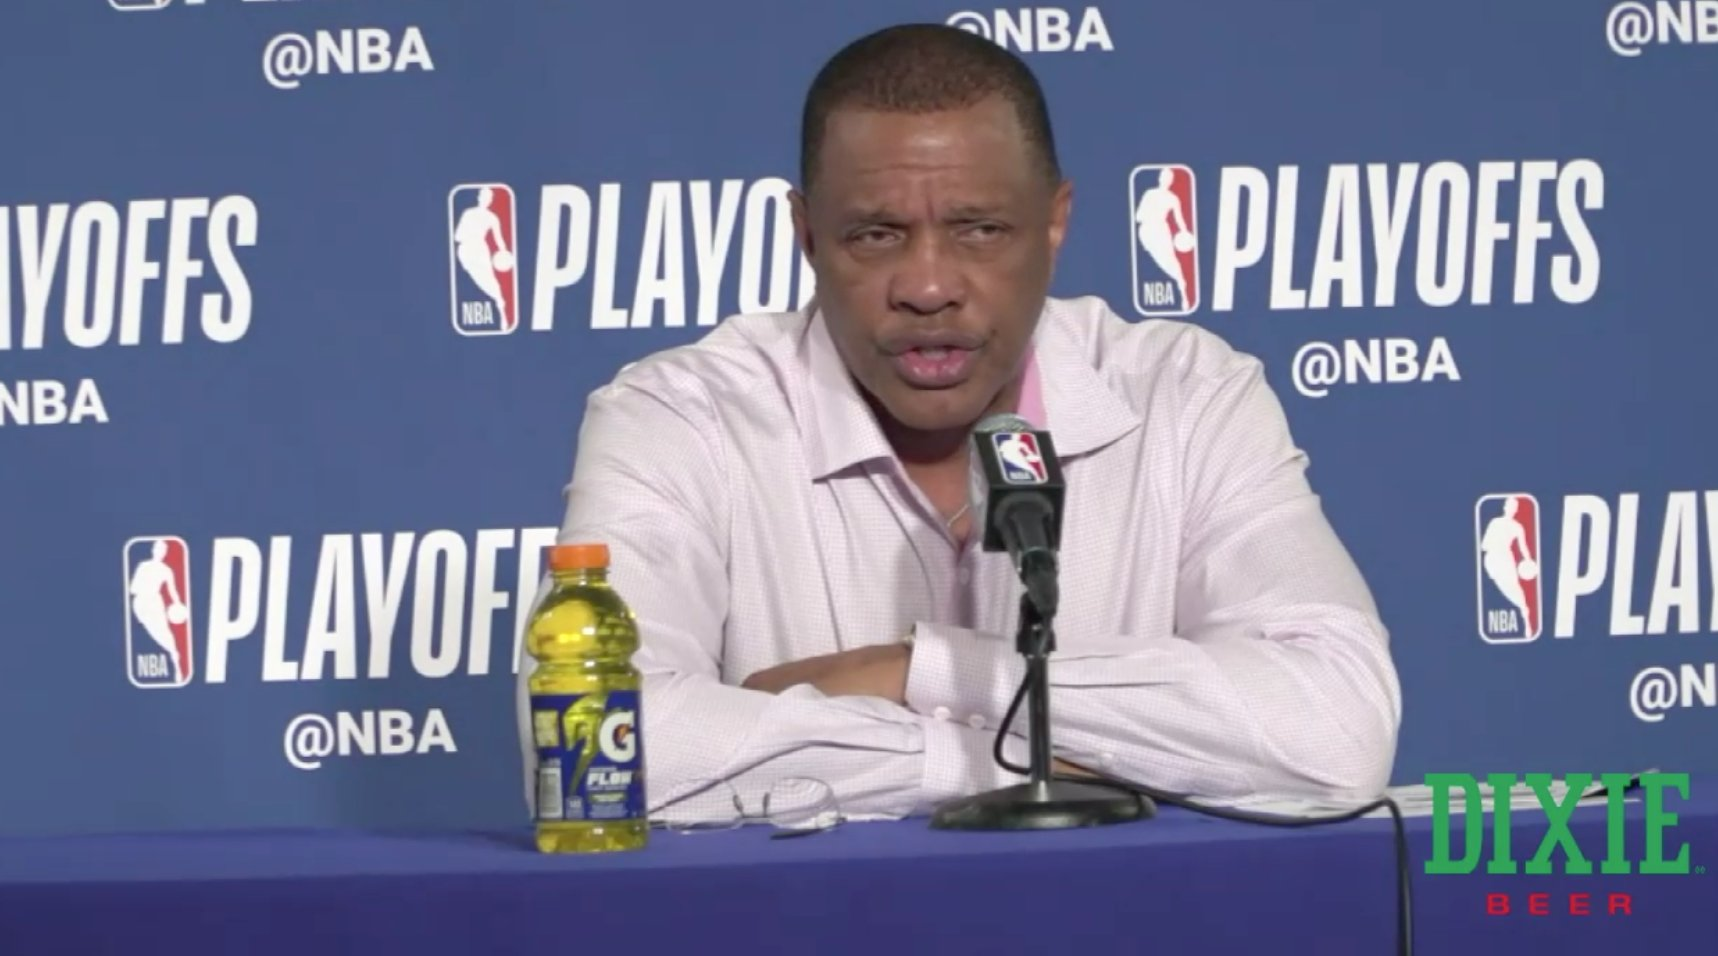 Gentry is speaking with the media postgame  Watch Live: https://t.co/GNKFCulHmC  (via @dixiebrewco)  #doitBIGGER https://t.co/UNBTqsZYHZ